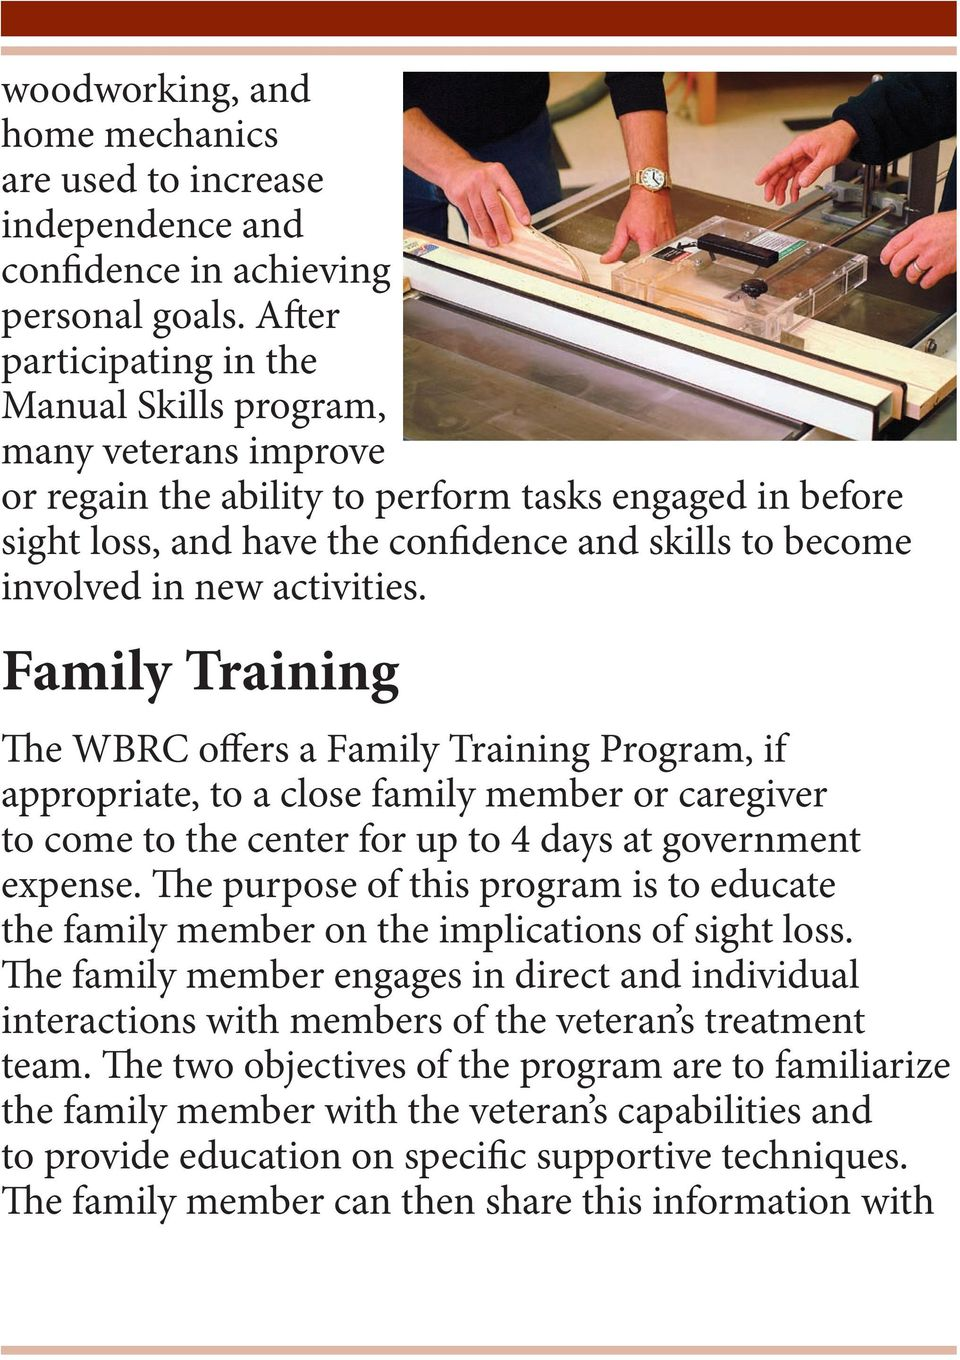 new activities. Family Training The WBRC offers a Family Training Program, if appropriate, to a close family member or caregiver to come to the center for up to 4 days at government expense.